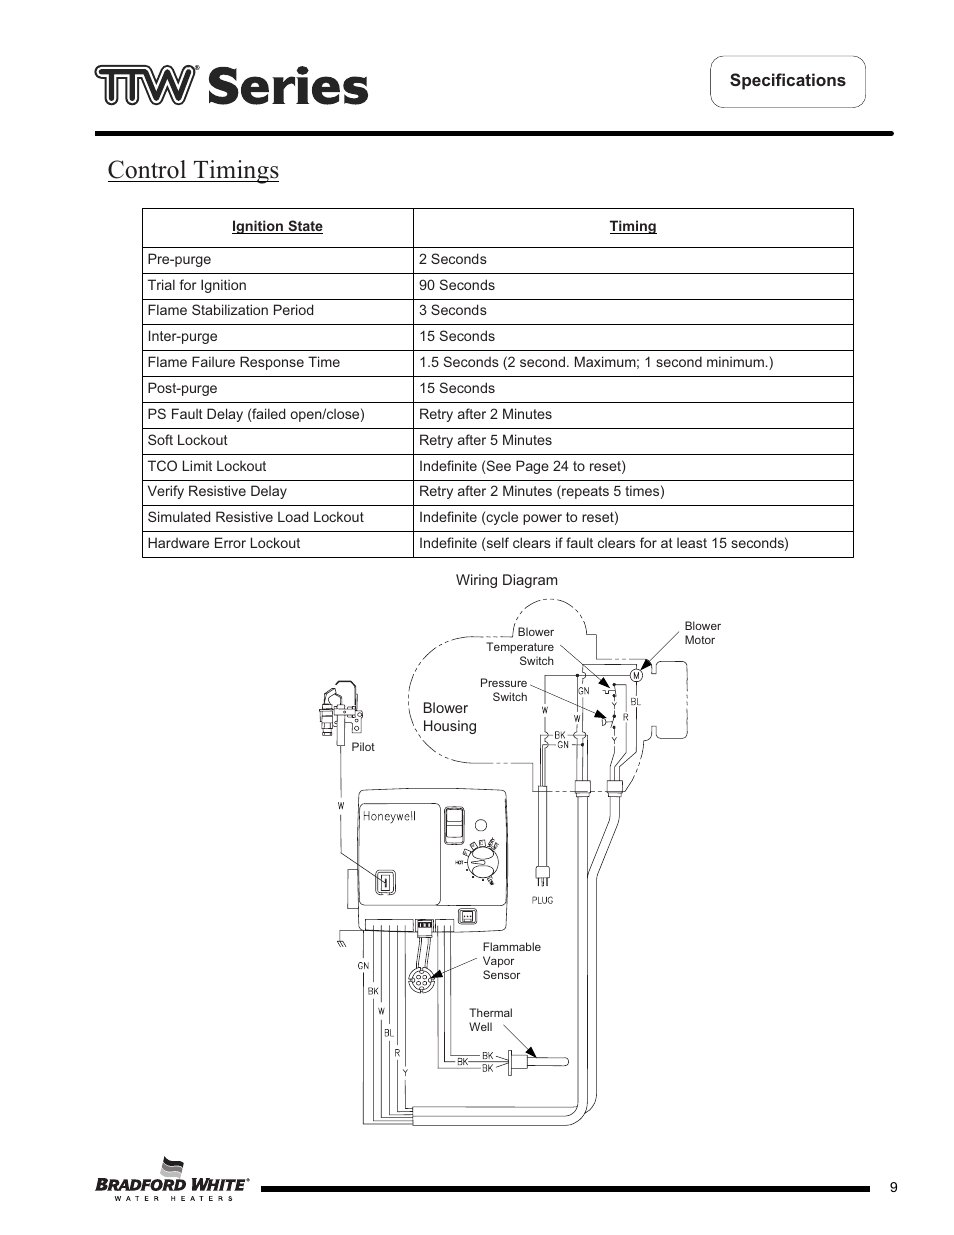 Pilot Retry Switch Wiring Diagram on standing pilot wiring diagram, ignition control module wiring diagram, transformer wiring diagram, control relay wiring diagram, solenoid wiring diagram, pilot light diagram, 240v baseboard heater wiring diagram, 240v heater thermostat wiring diagram, thermistor wiring diagram, pilot fuse box diagram,